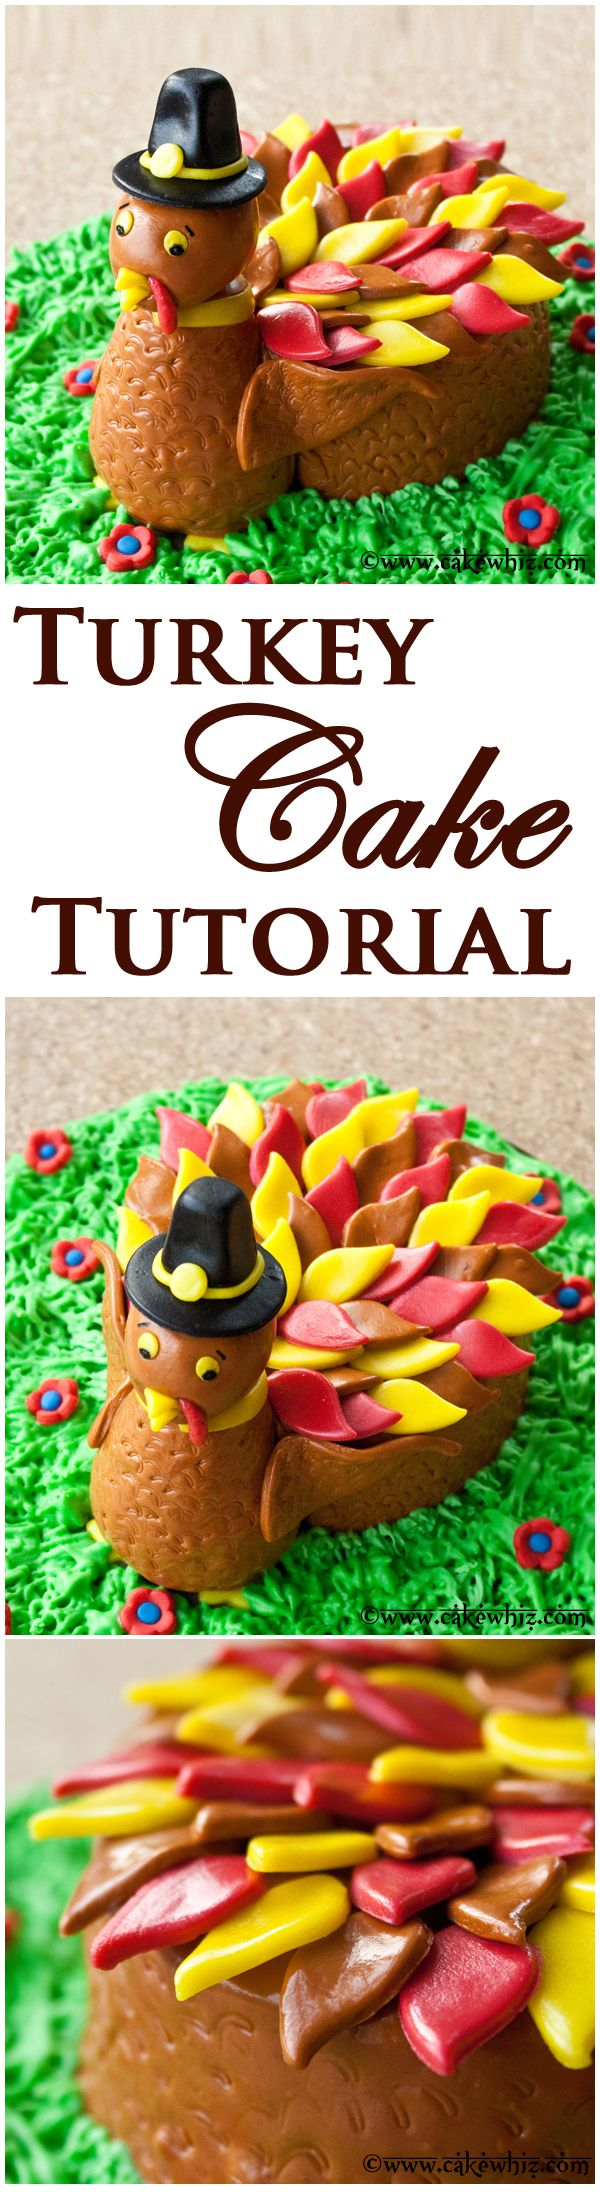 Learn to make a cute TURKEY CAKE for Thanksgiving with this step-by-step tutorial! It's sure to be a hit at your party! From cakewhiz.com